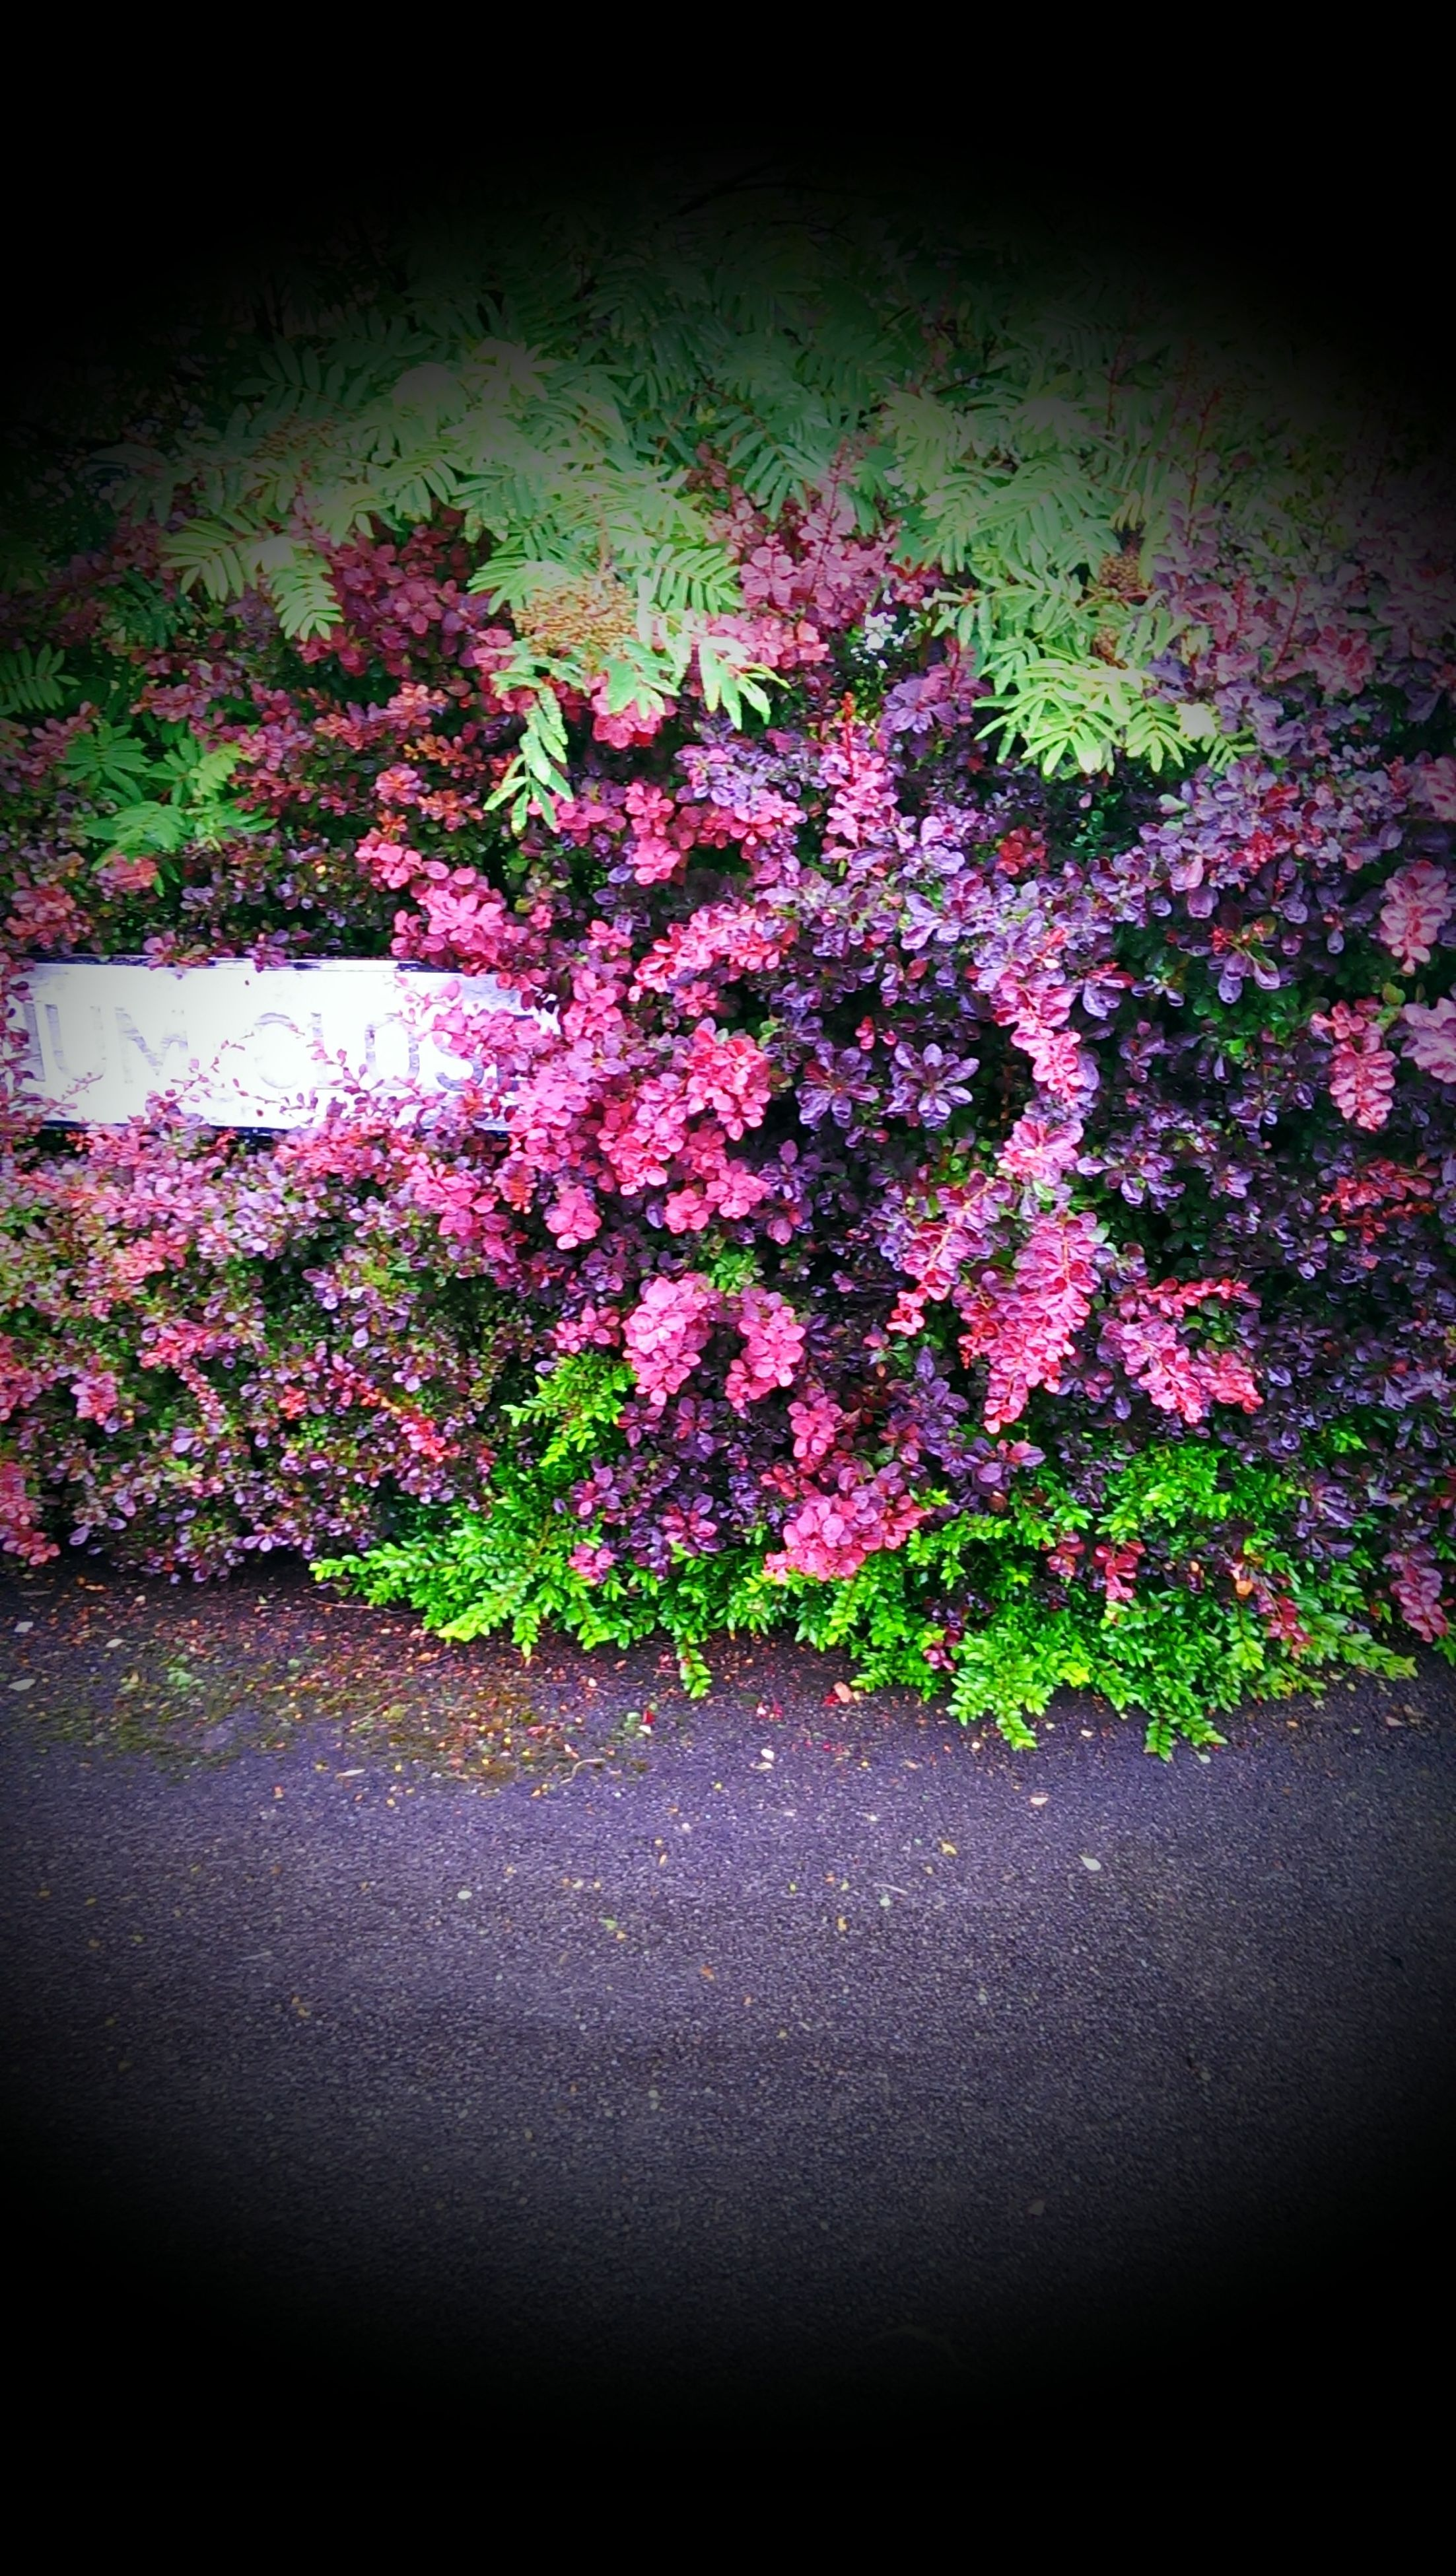 flower, freshness, fragility, petal, growth, pink color, beauty in nature, blooming, plant, nature, in bloom, flower head, blossom, high angle view, botany, springtime, outdoors, purple, day, no people